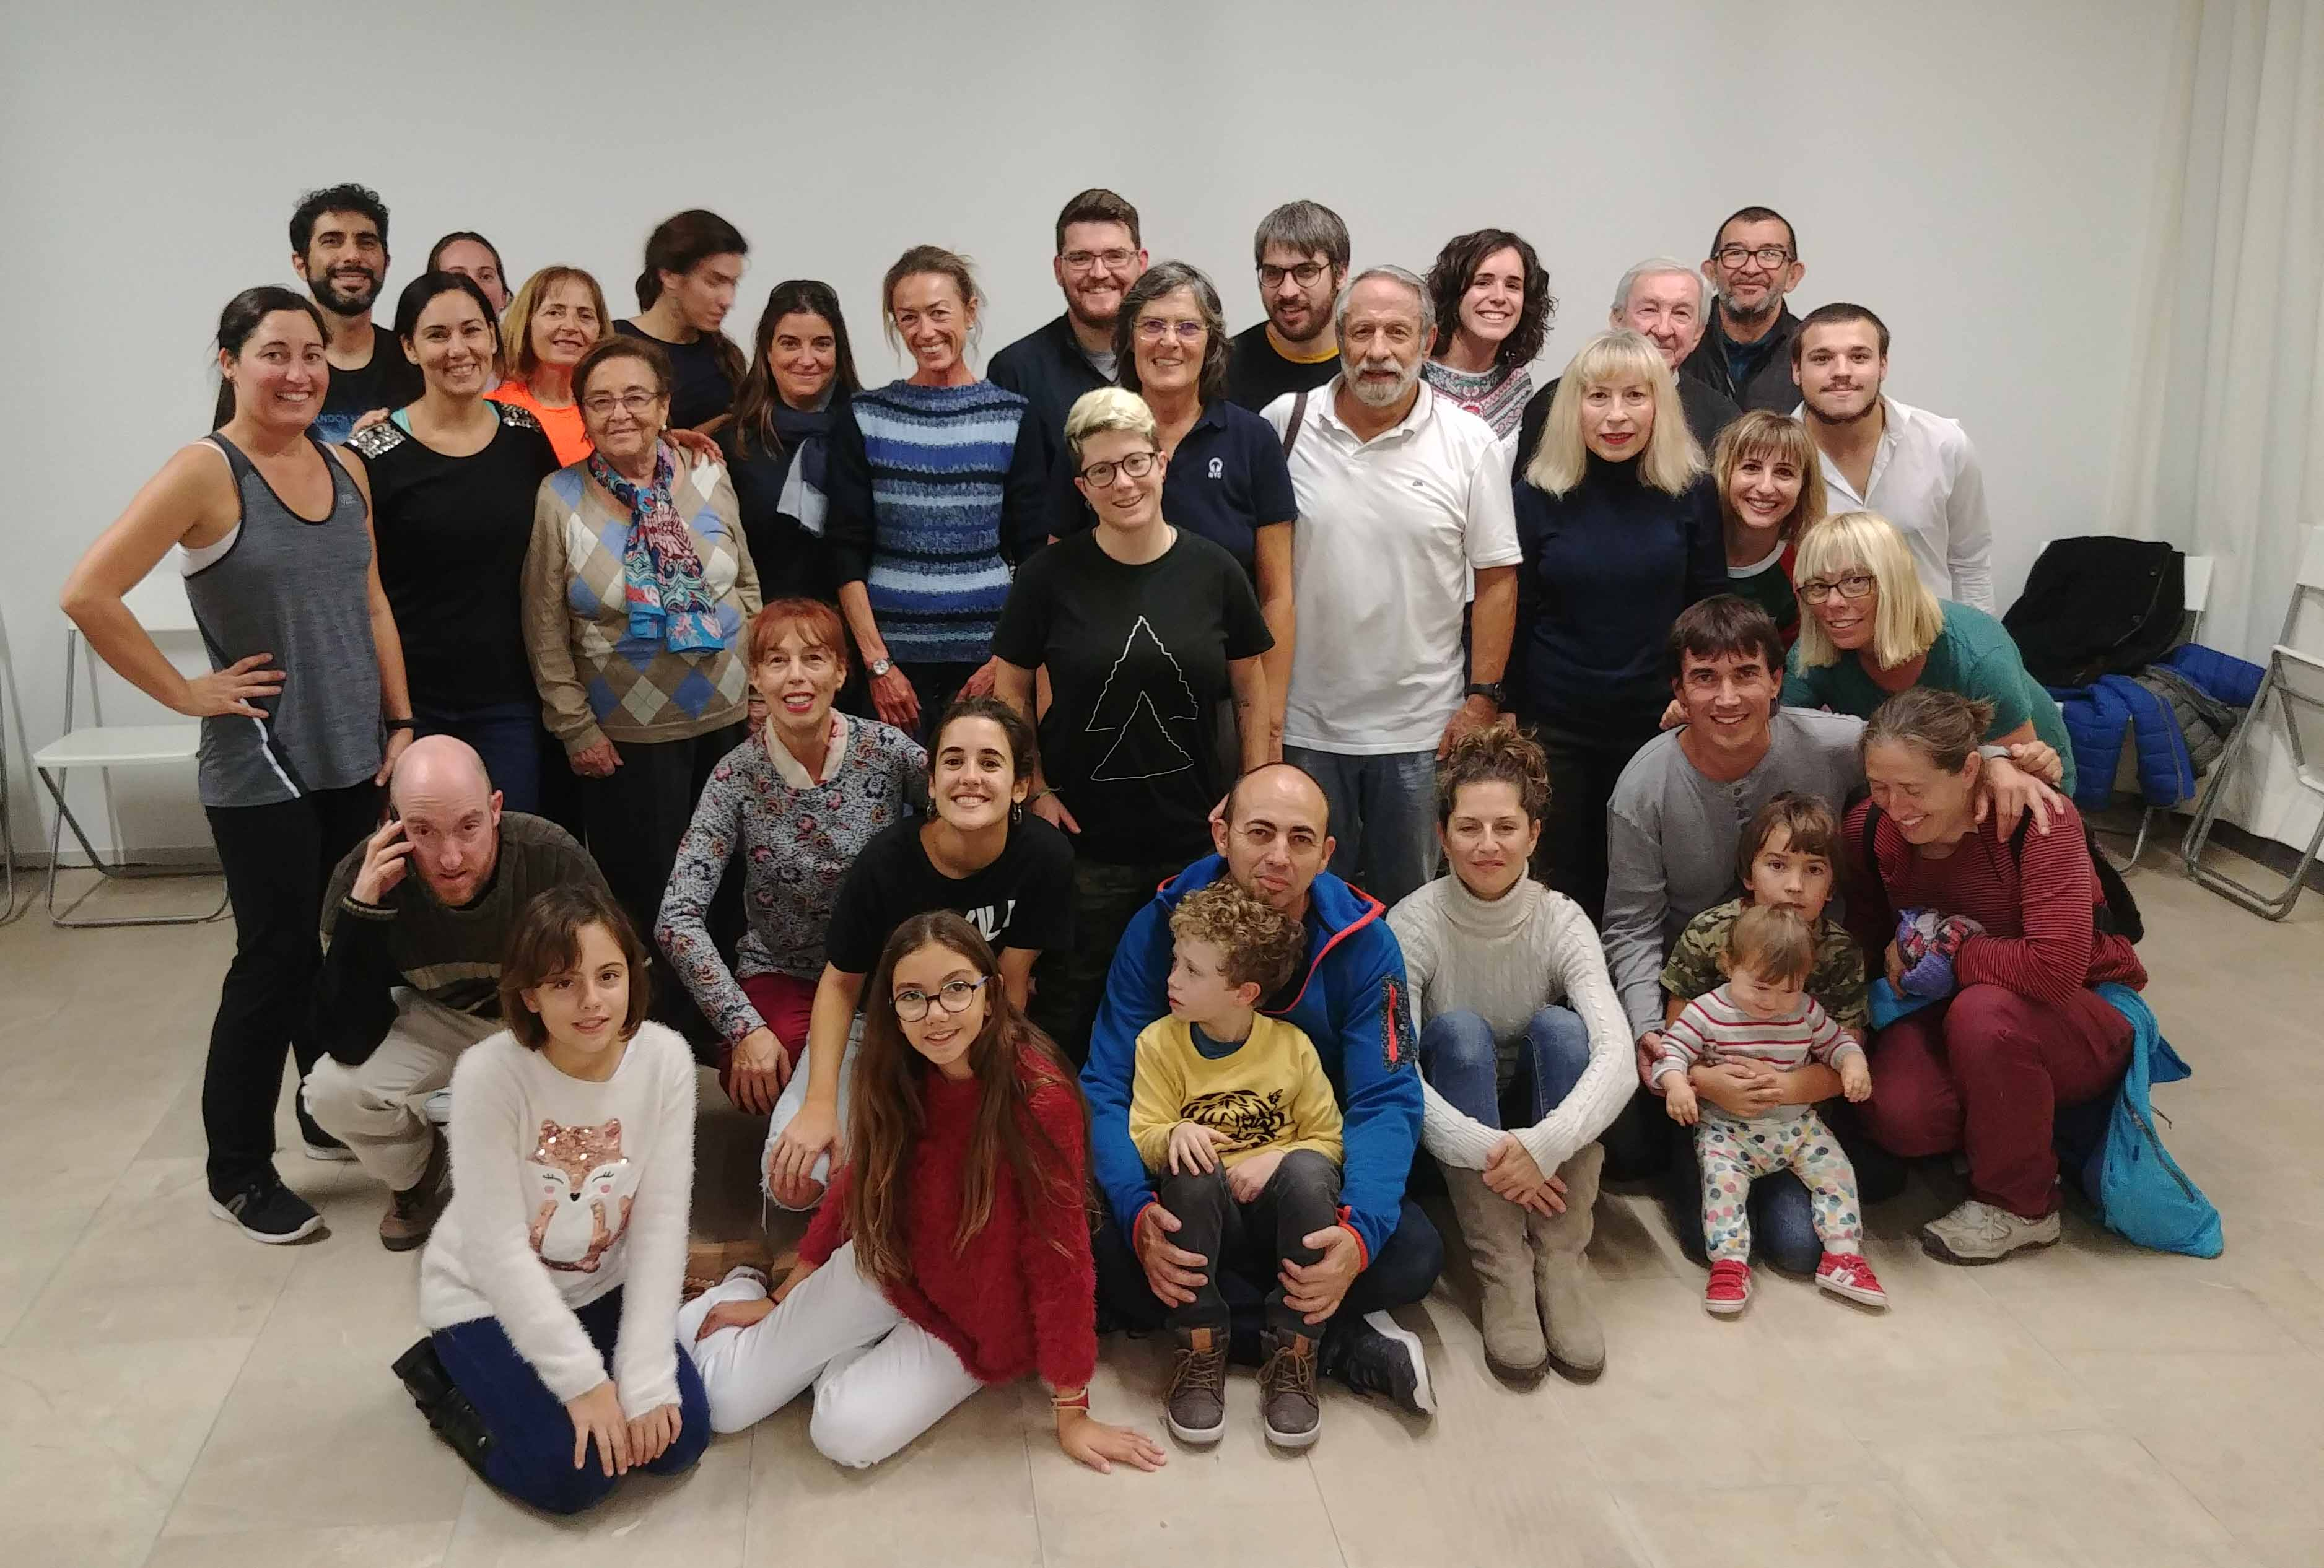 Participants in the Basque dance class in Alicante 10 days ago; this Friday, Basque dinner and atmosphere